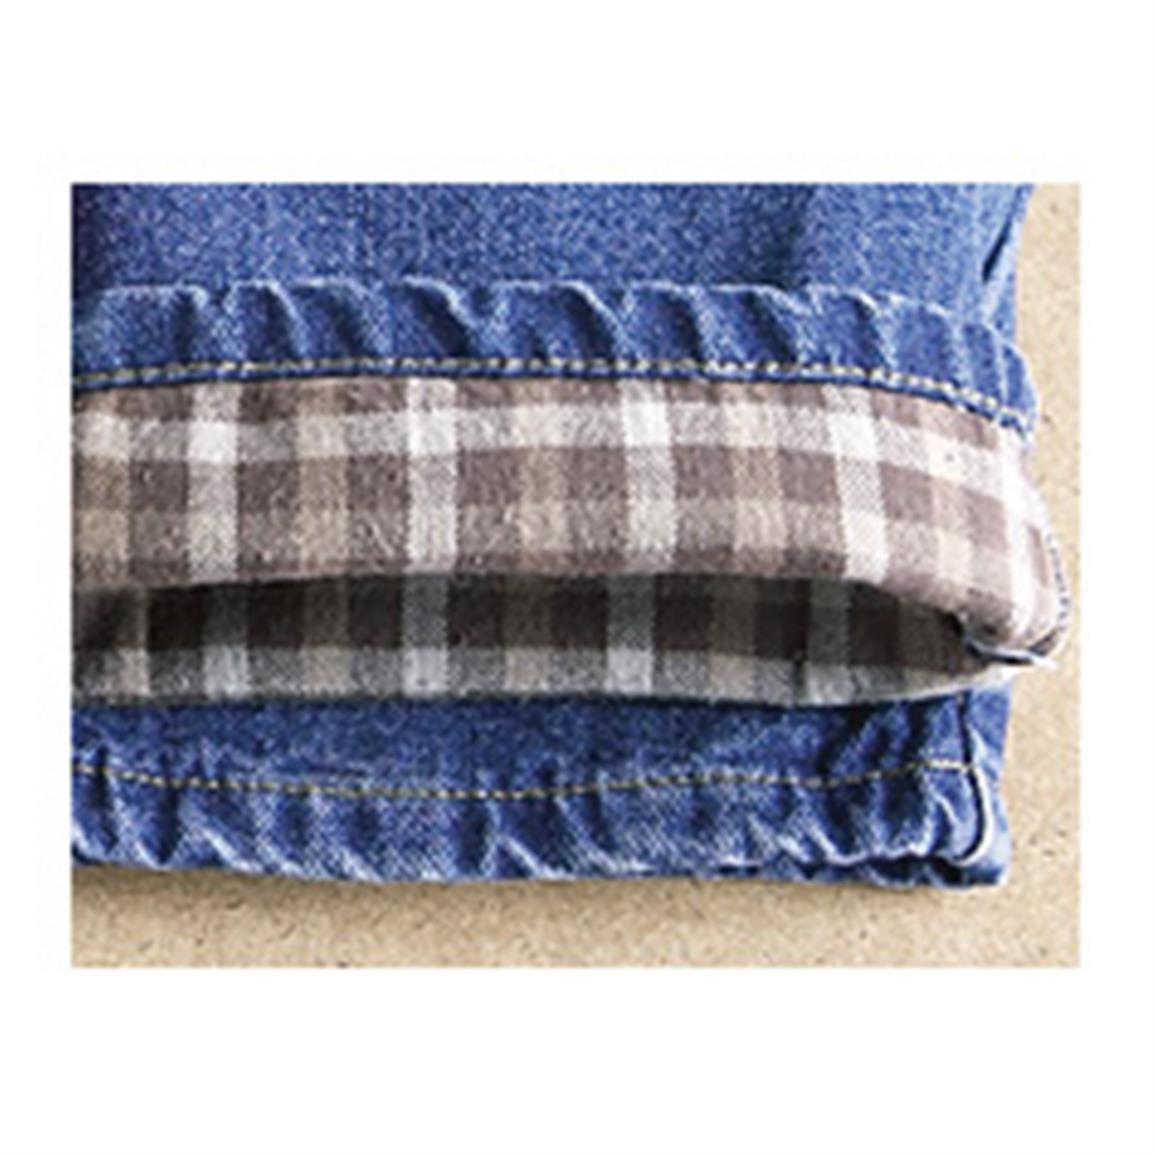 Flannel lining gives you warmth that fits right